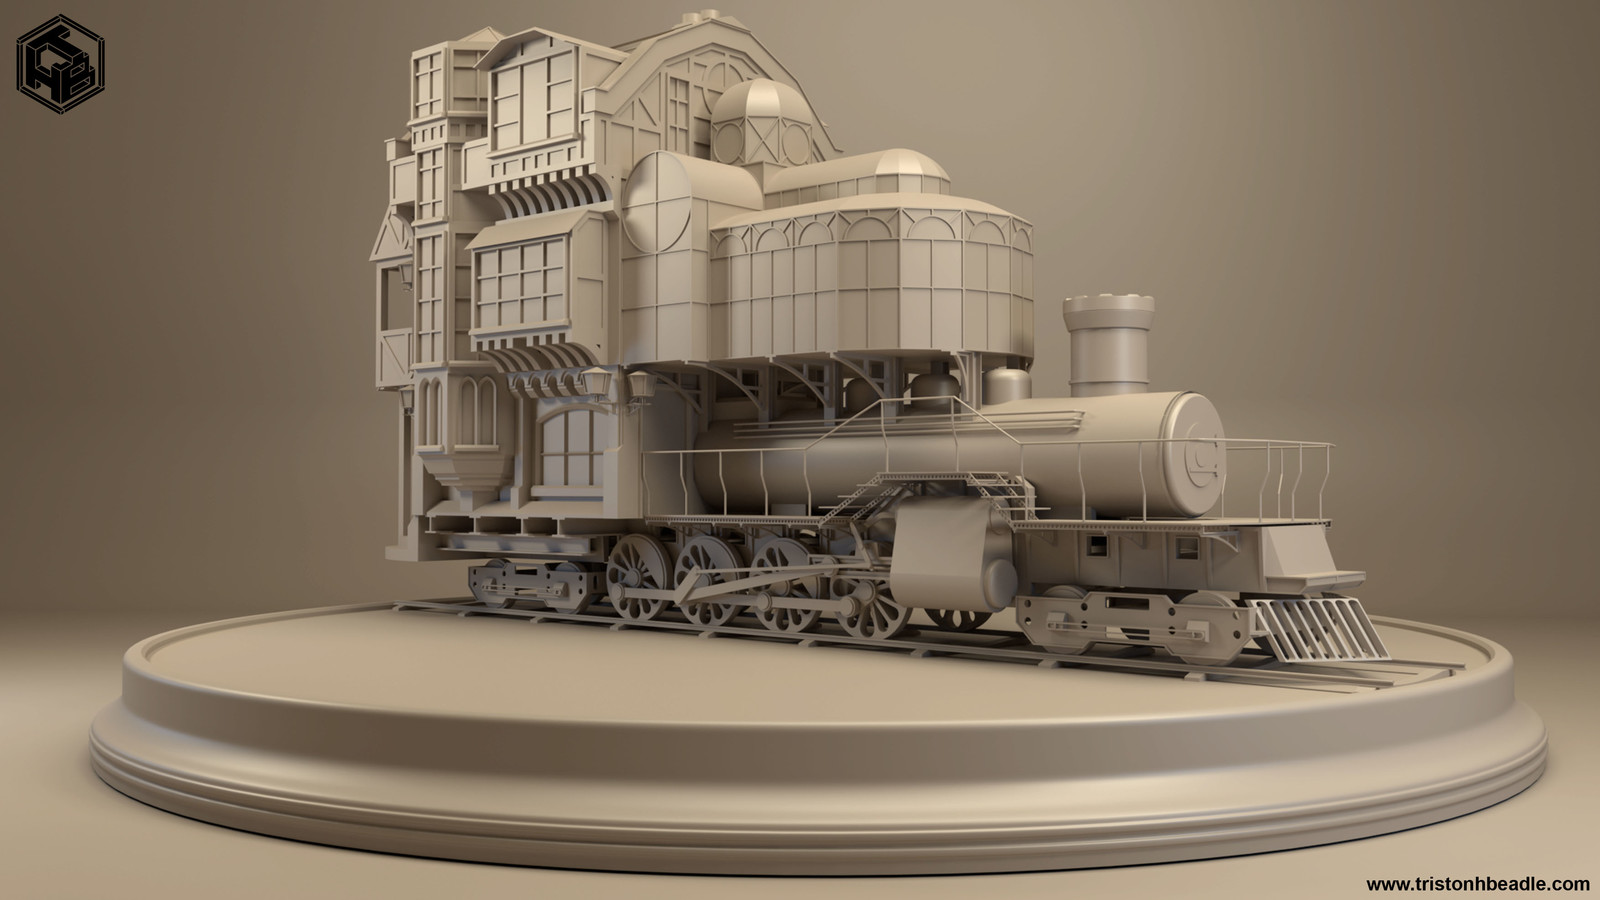 Steampunk train house